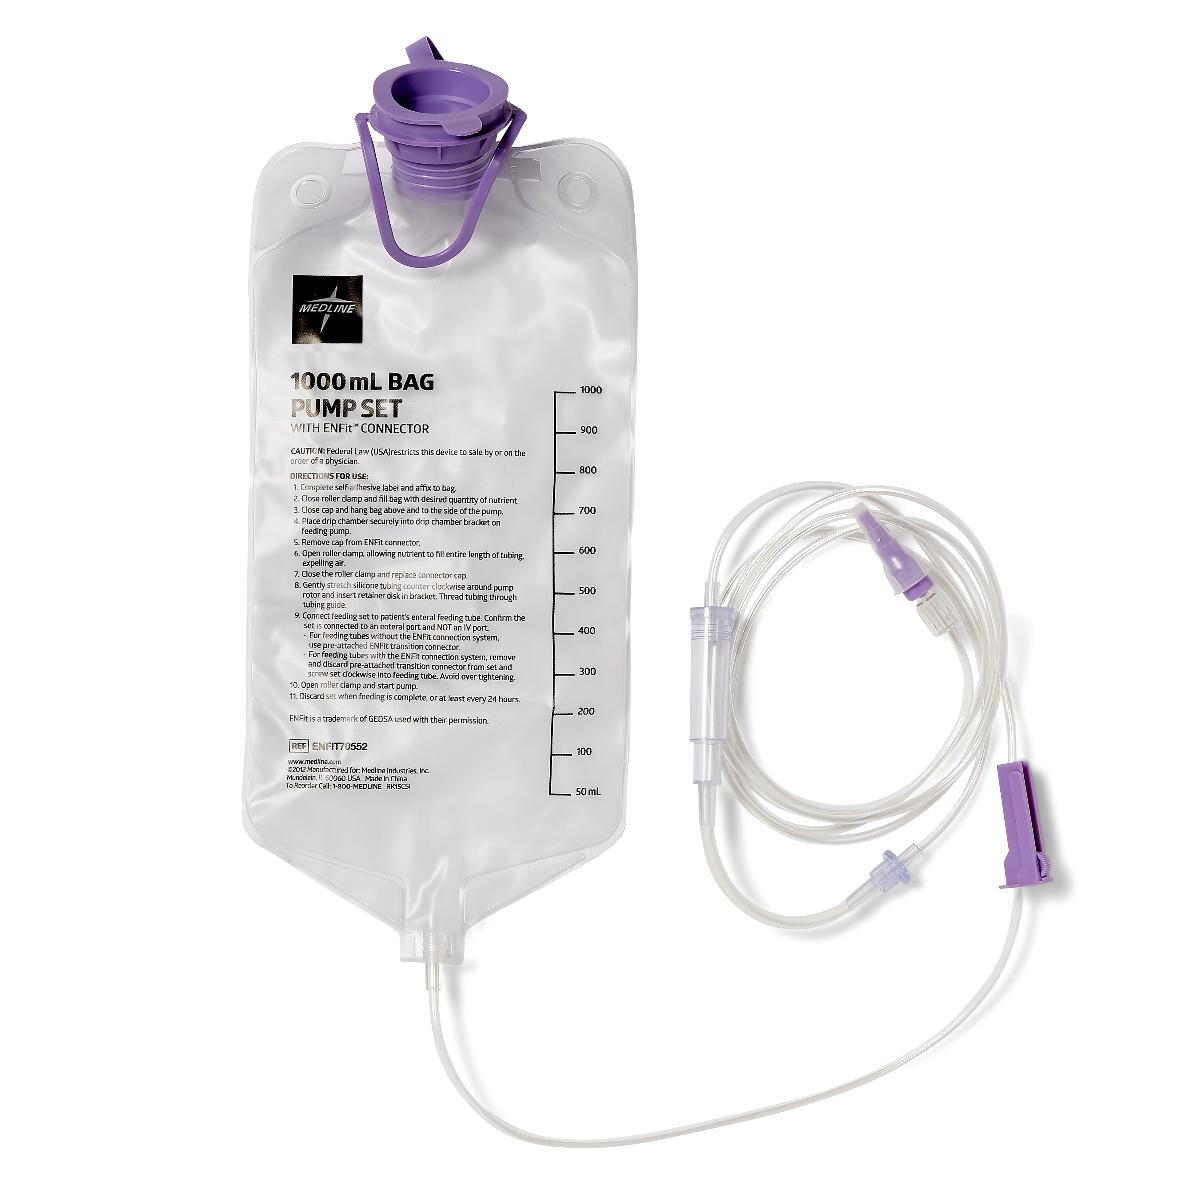 ENTRAFLO PUMP 1000ML BAG SET